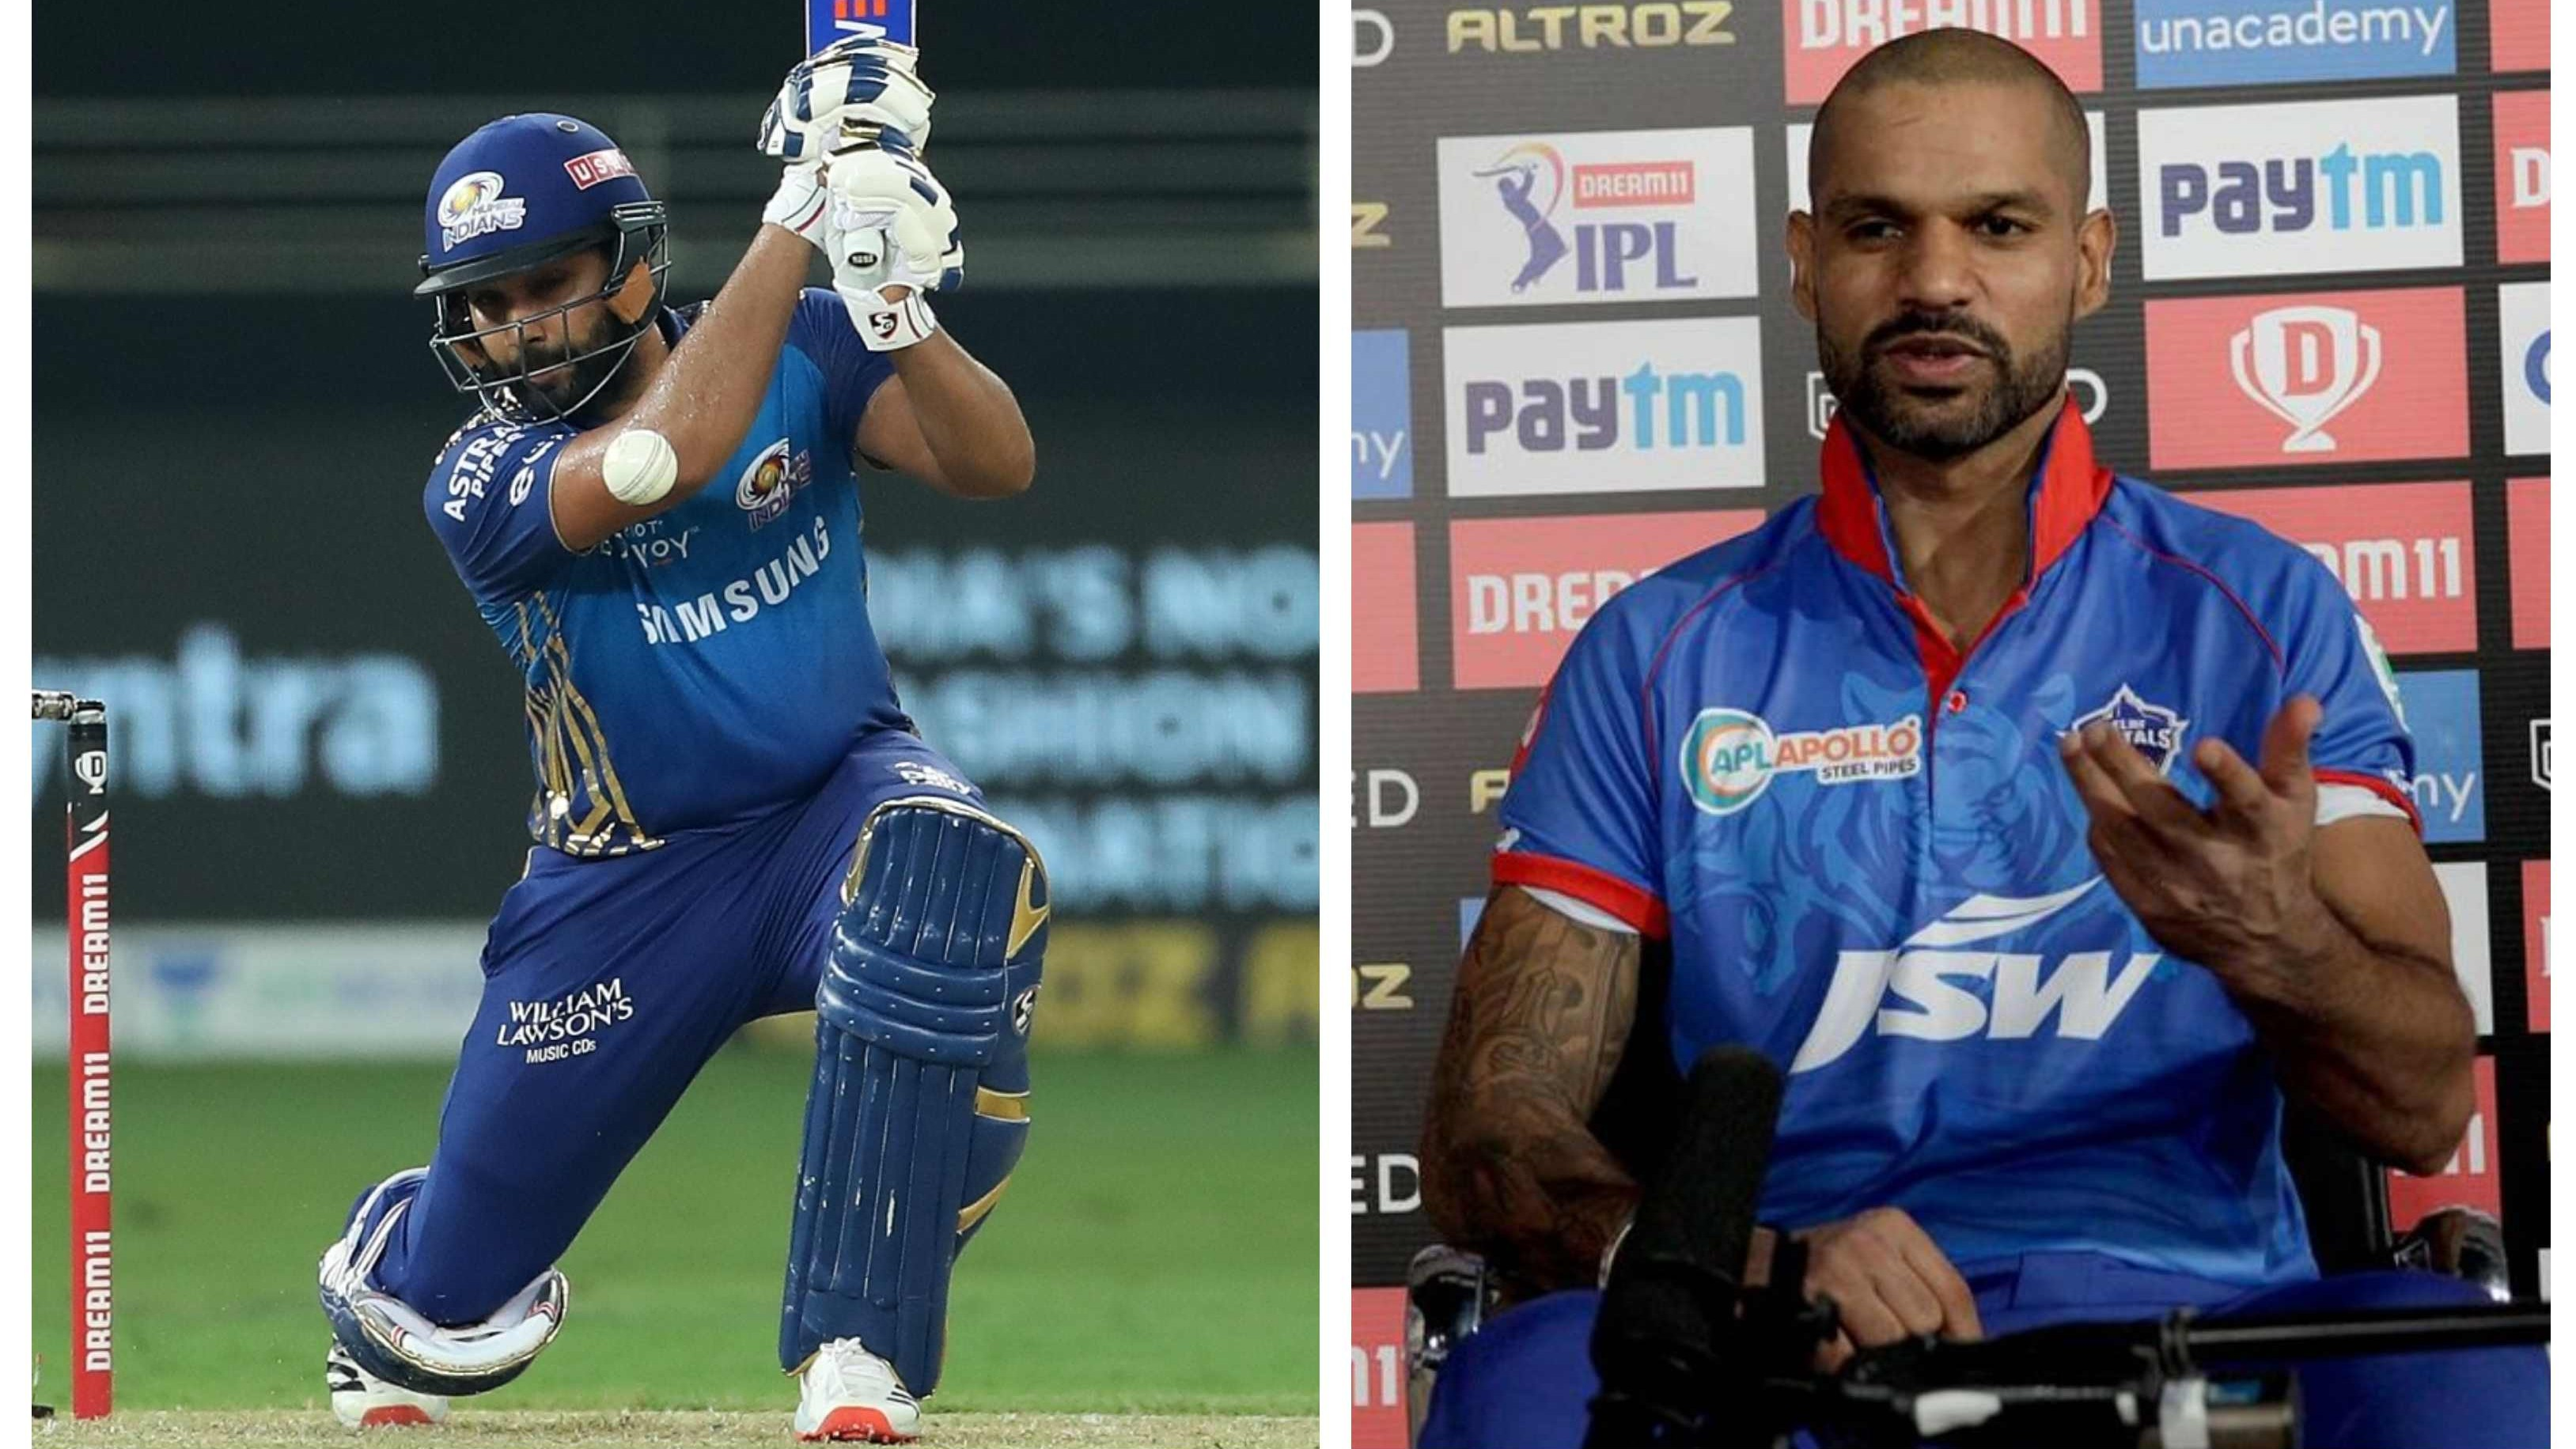 IPL 2020: Shikhar Dhawan says DC will look to exploit Rohit Sharma's lack of form since returning from injury